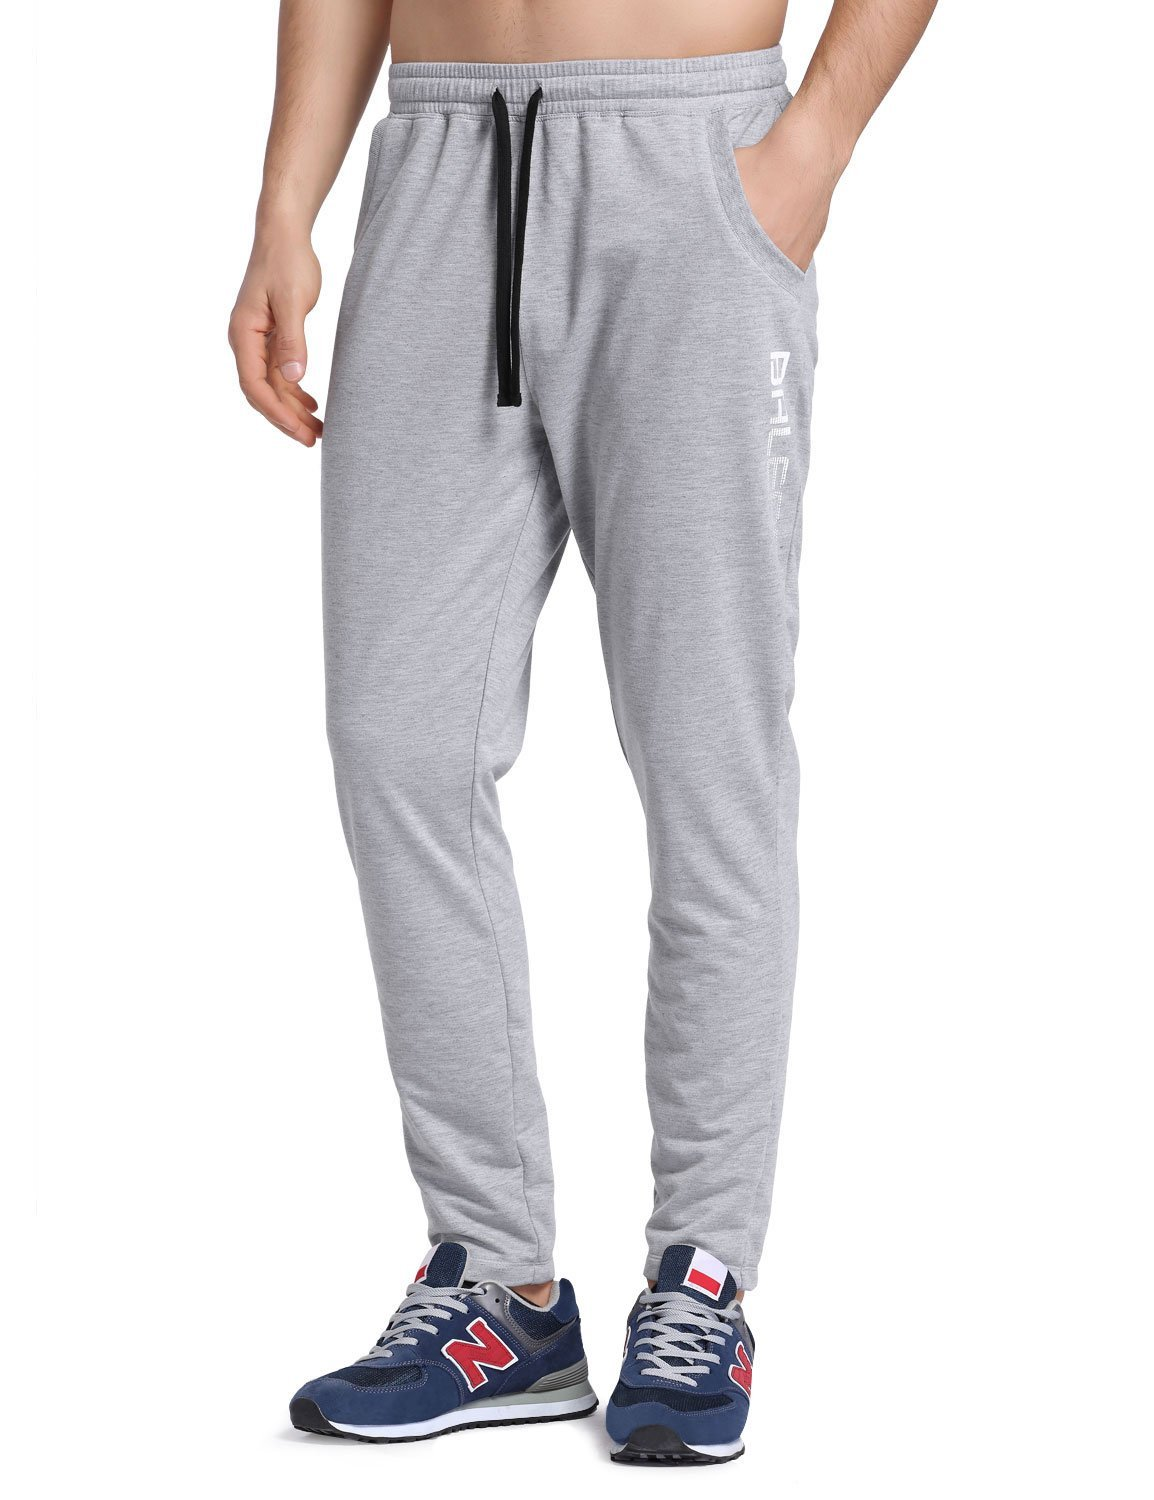 BALEAF Men's Tapered Athletic Running Pants Joggers Lounge Workout Sweatpants